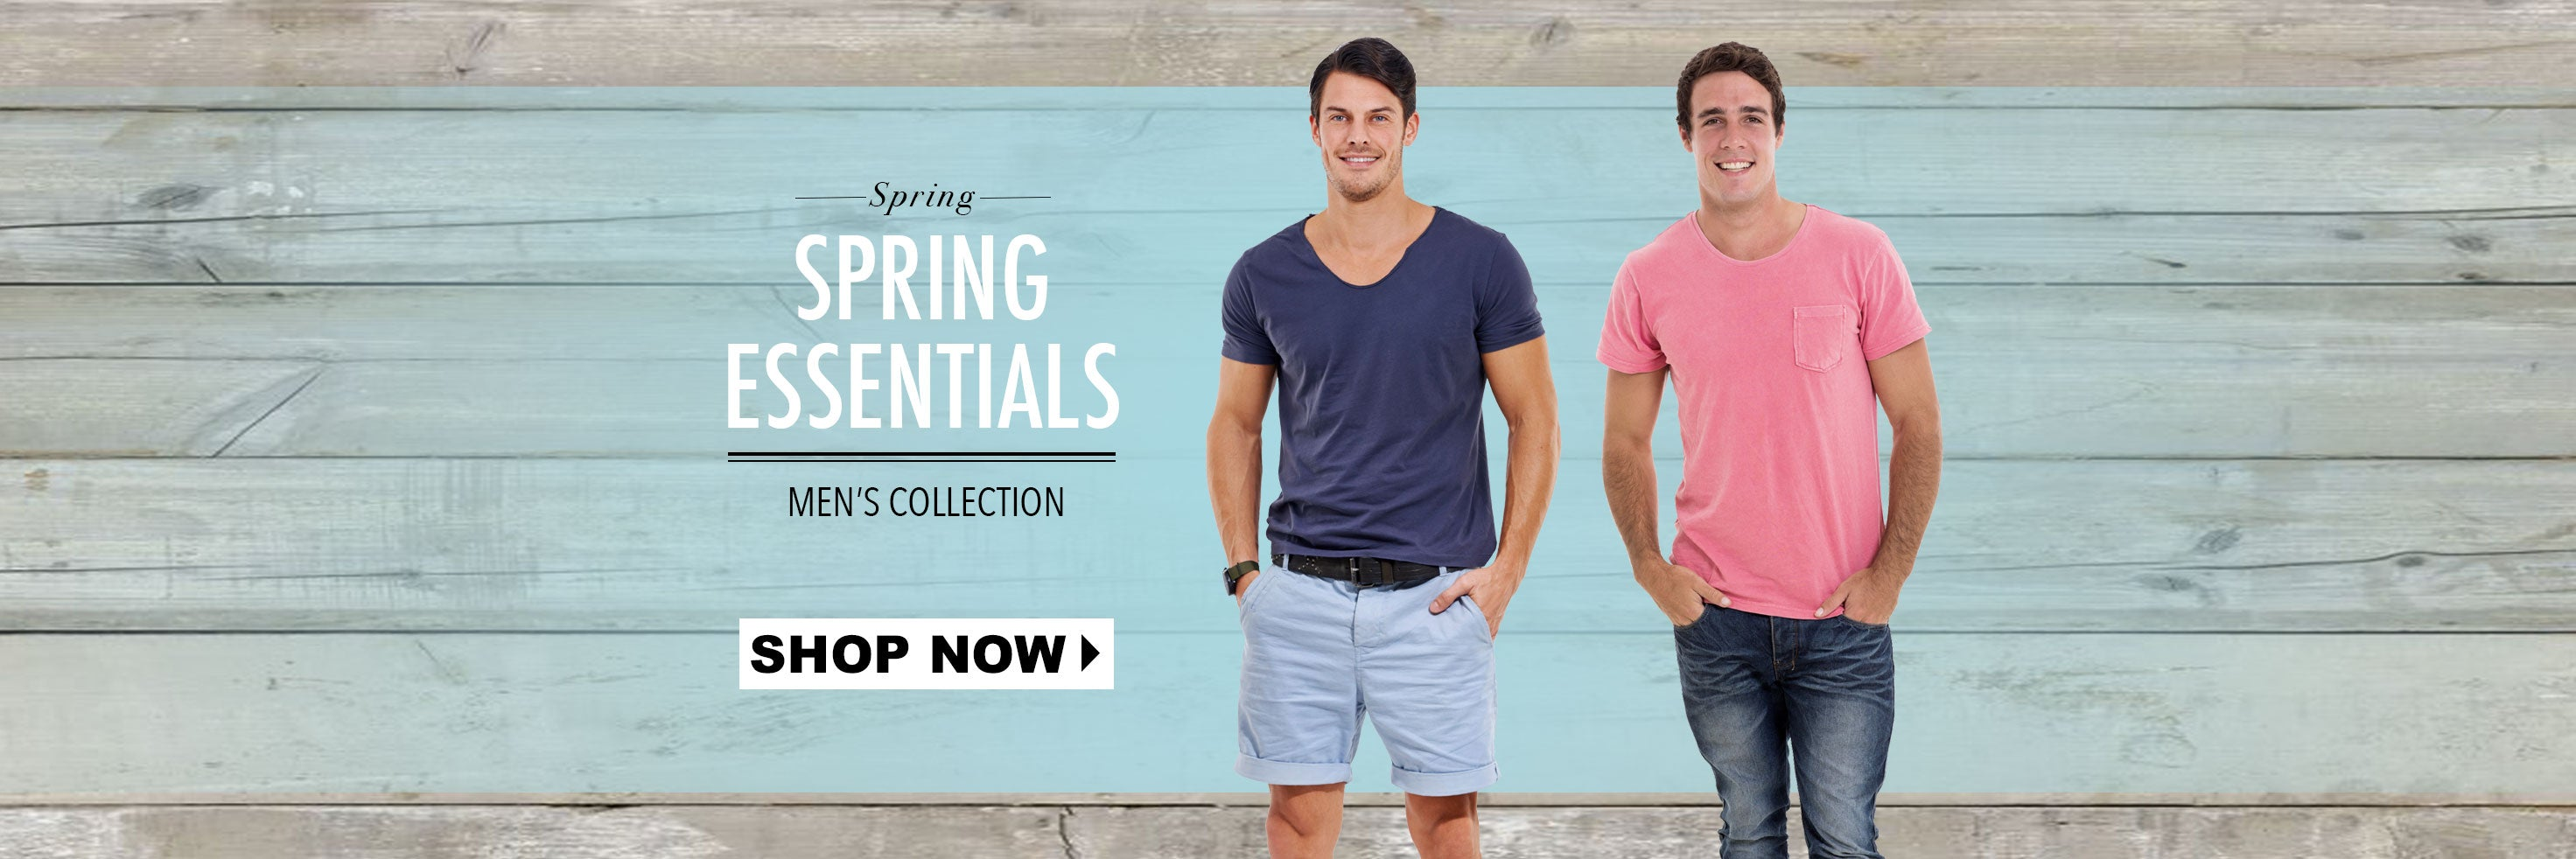 Spring Essentials - Men's Collection